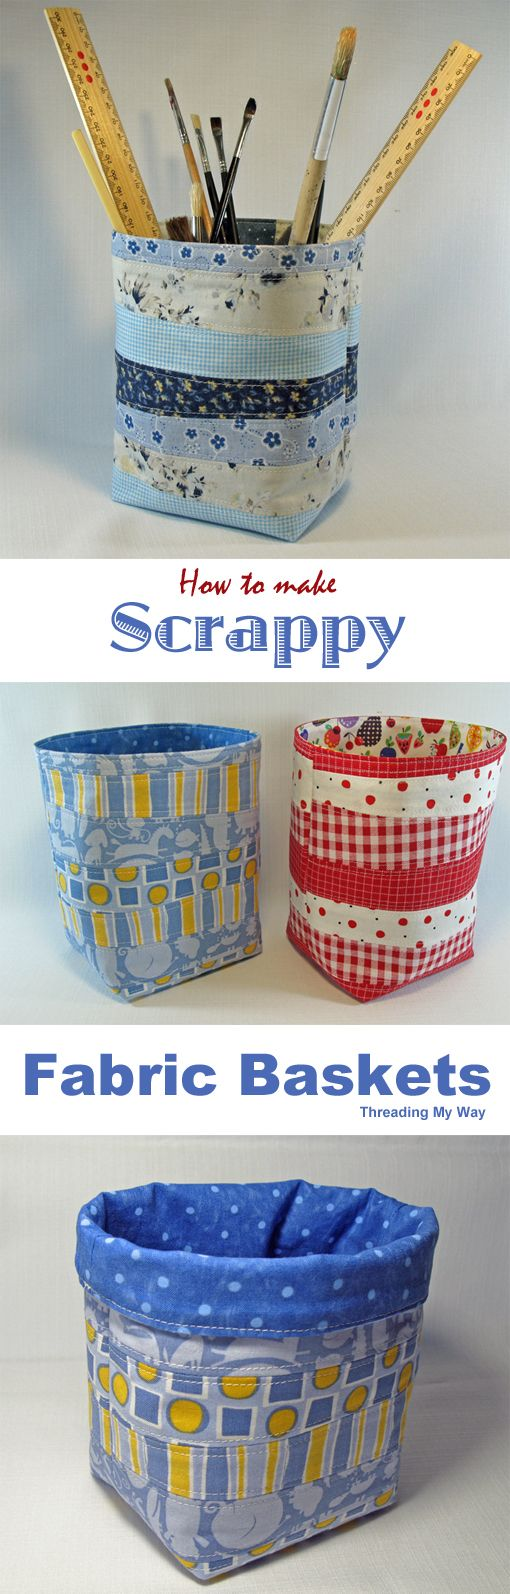 Learn how to make a scrappy fabric basket. Tutorial shows how to use fabric scra...